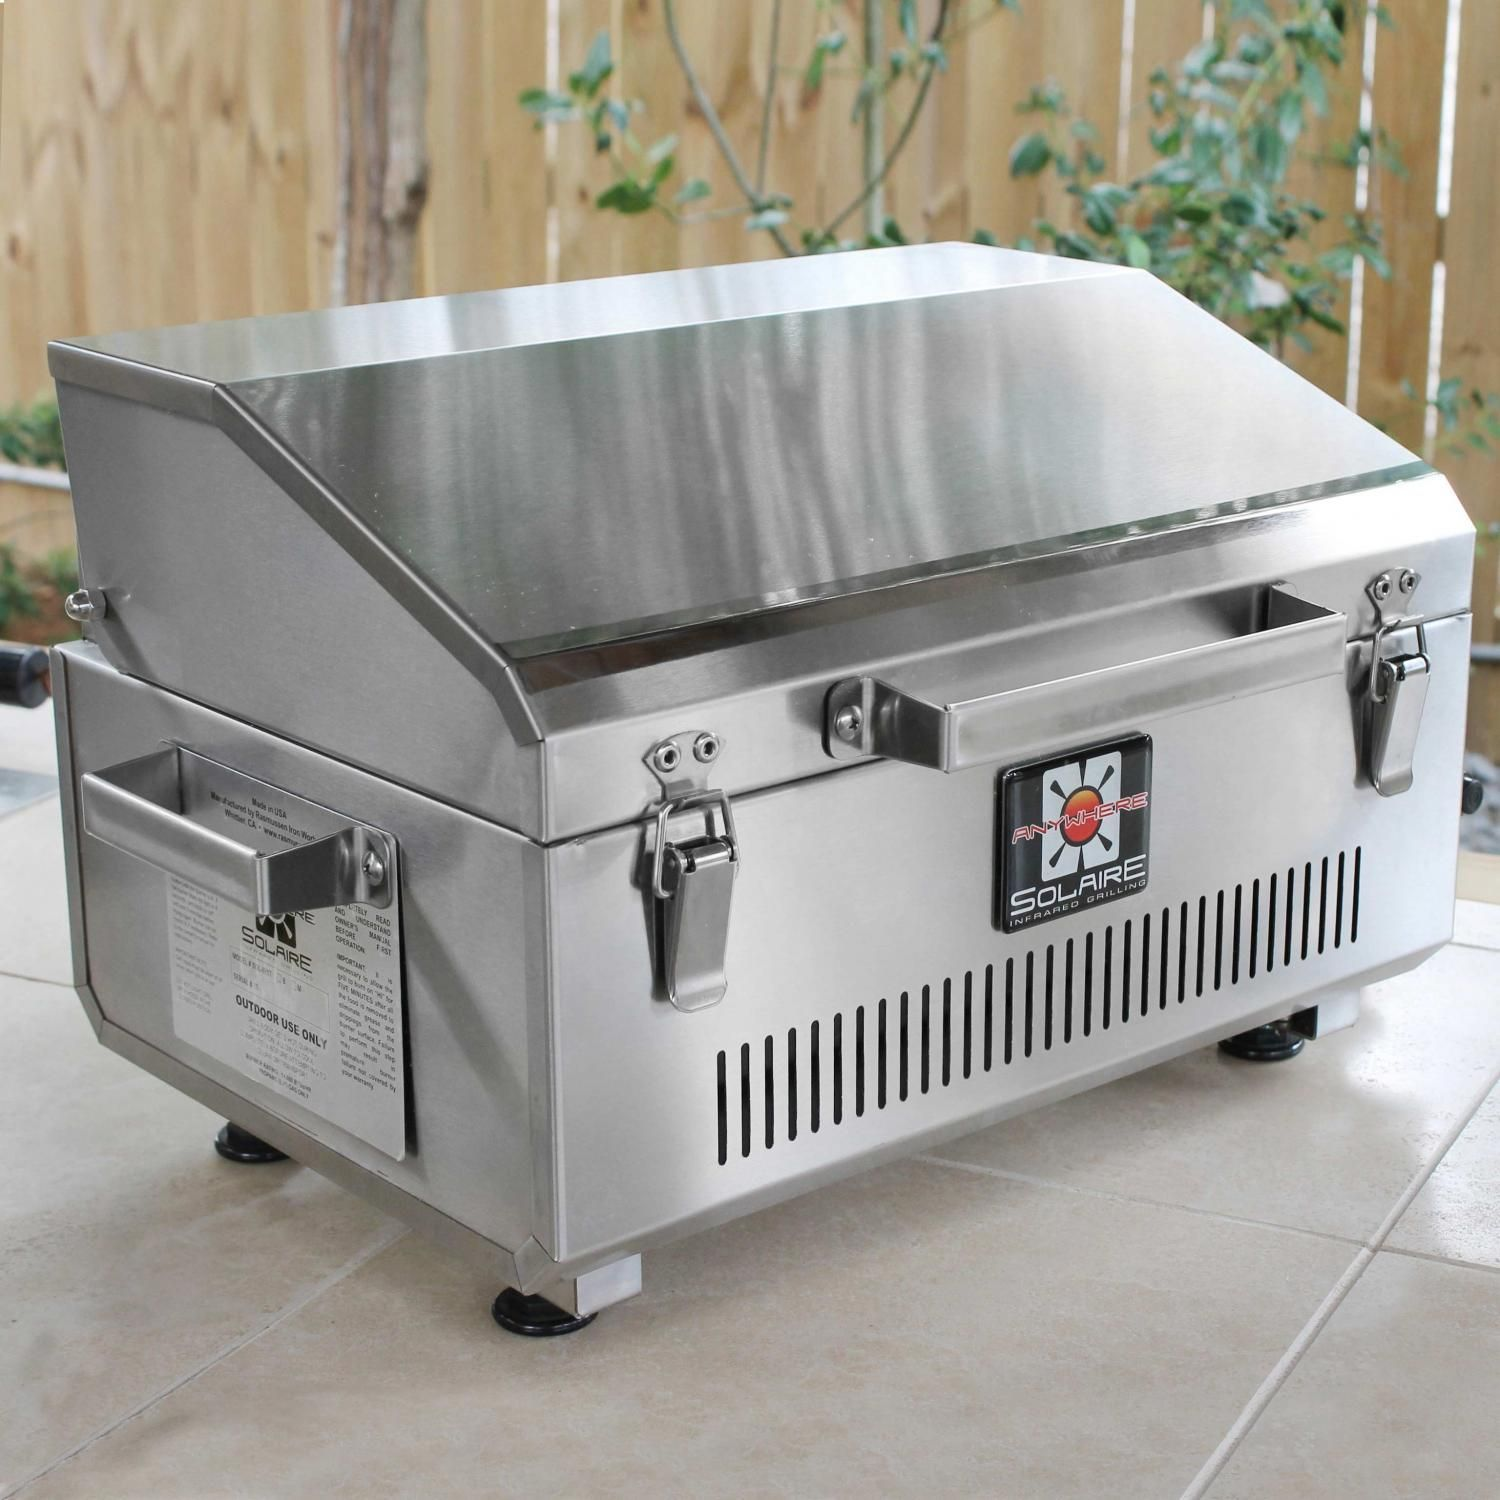 Solaire Anywhere 304 Grade Stainless Steel Portable Infrared Propane Gas  Grill   SOL IR17B